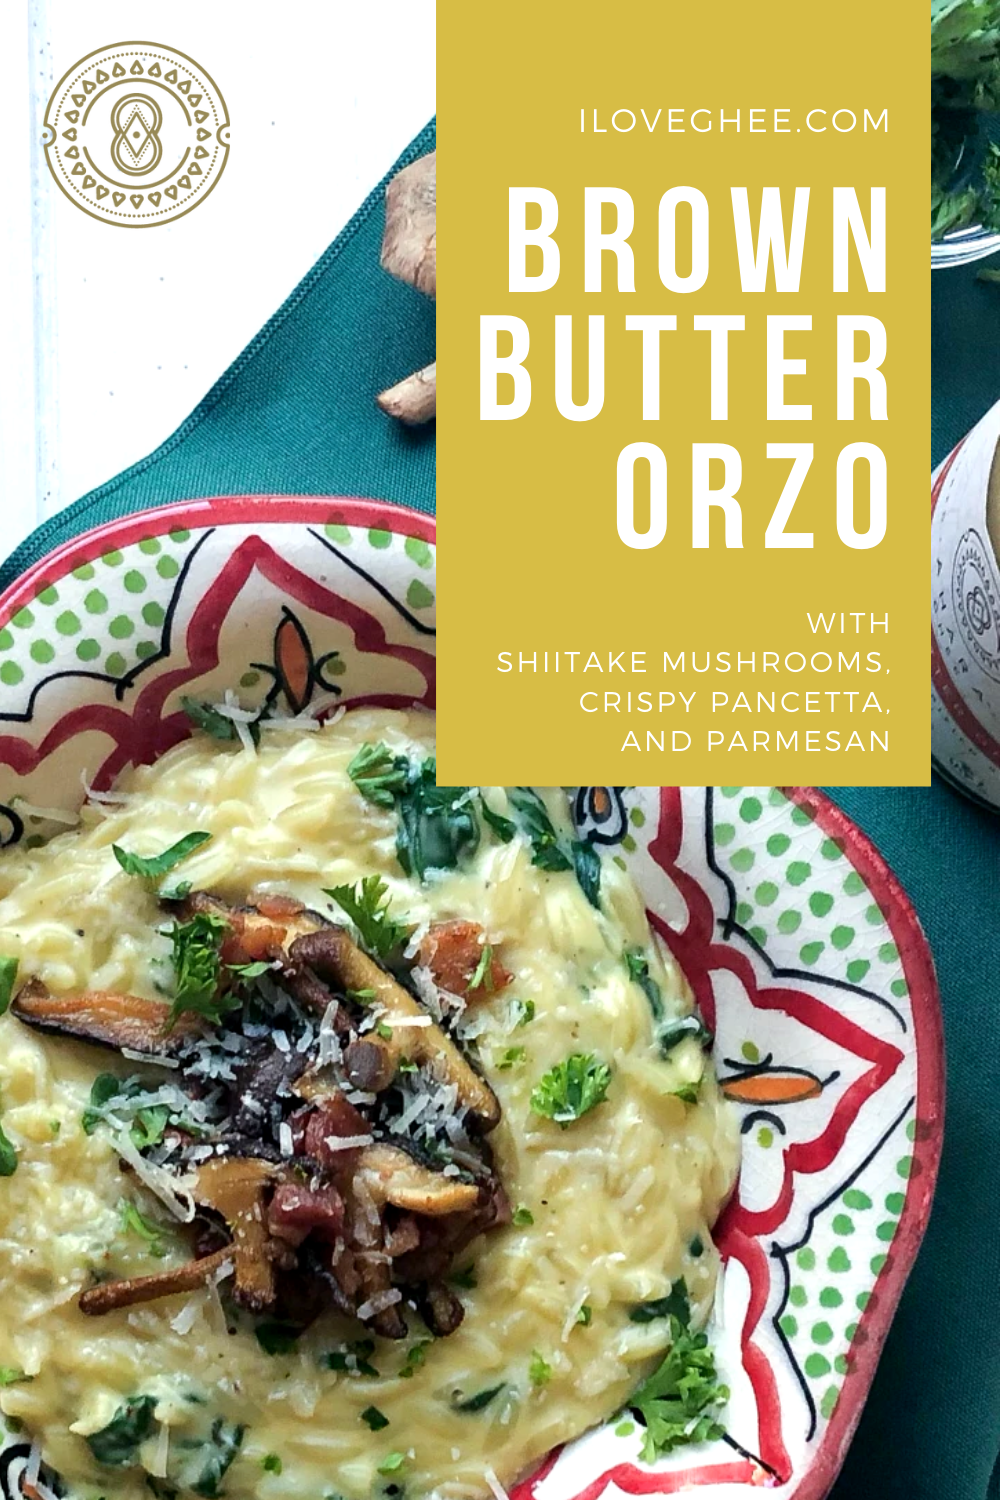 One of the most requested side dishes.  Try this healthy and flavorful orzo dish made with Ahara Brown Butter Ghee.   #pancetta #healthy #organic #mushroom #betterthanbutter #nutritious #eatrealfood #organicghee #ayurveda #iloveghee